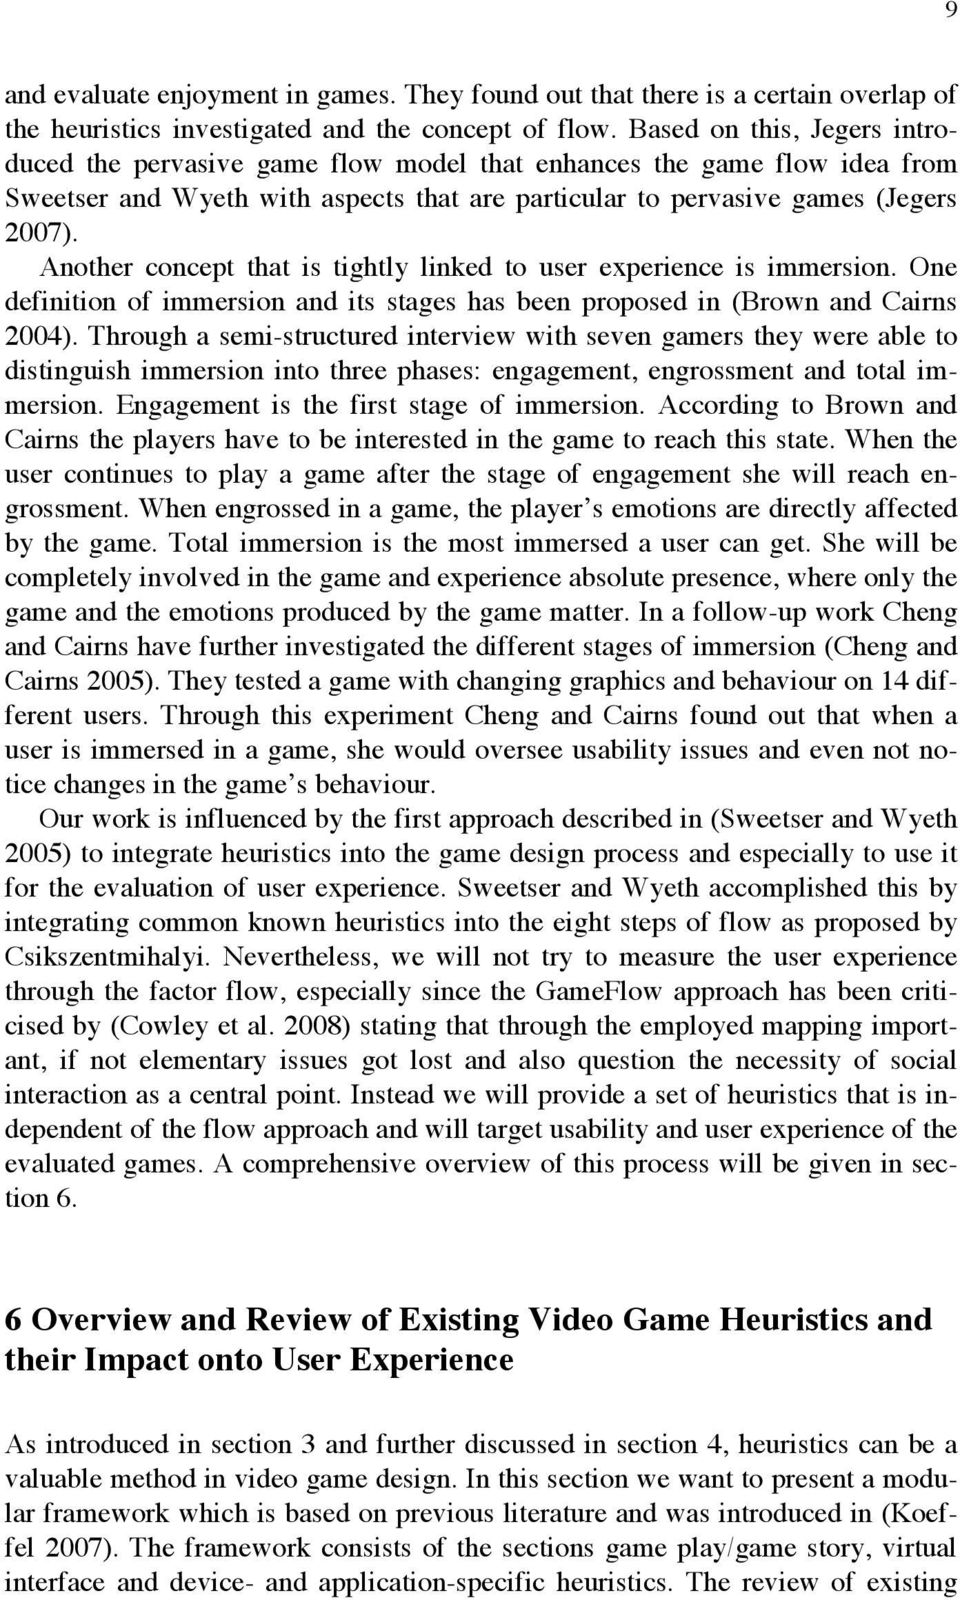 Another concept that is tightly linked to user experience is immersion. One definition of immersion and its stages has been proposed in (Brown and Cairns 2004).